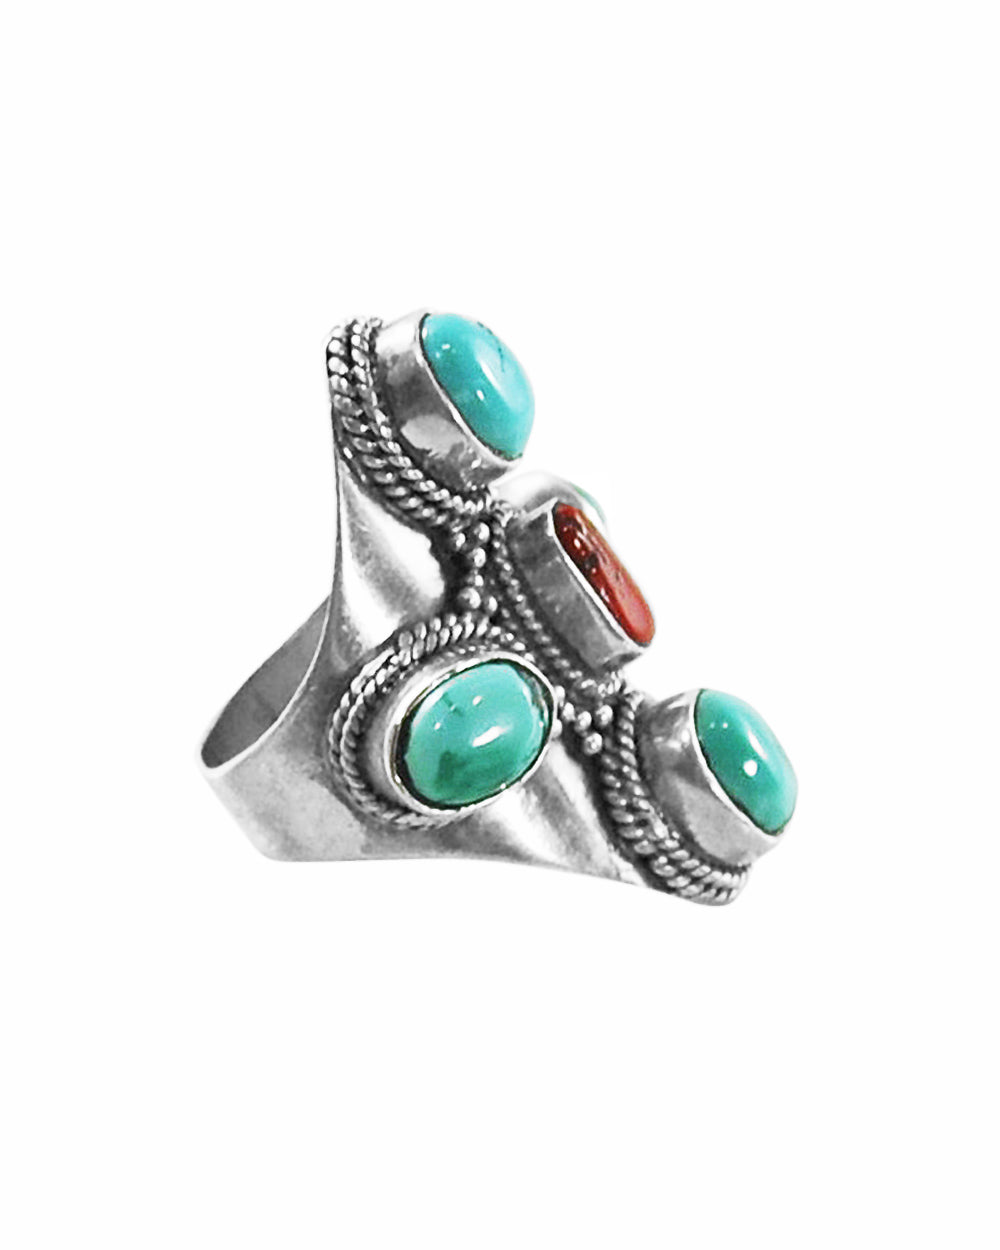 Turquoise and Coral Statement Ring Sterling Silver